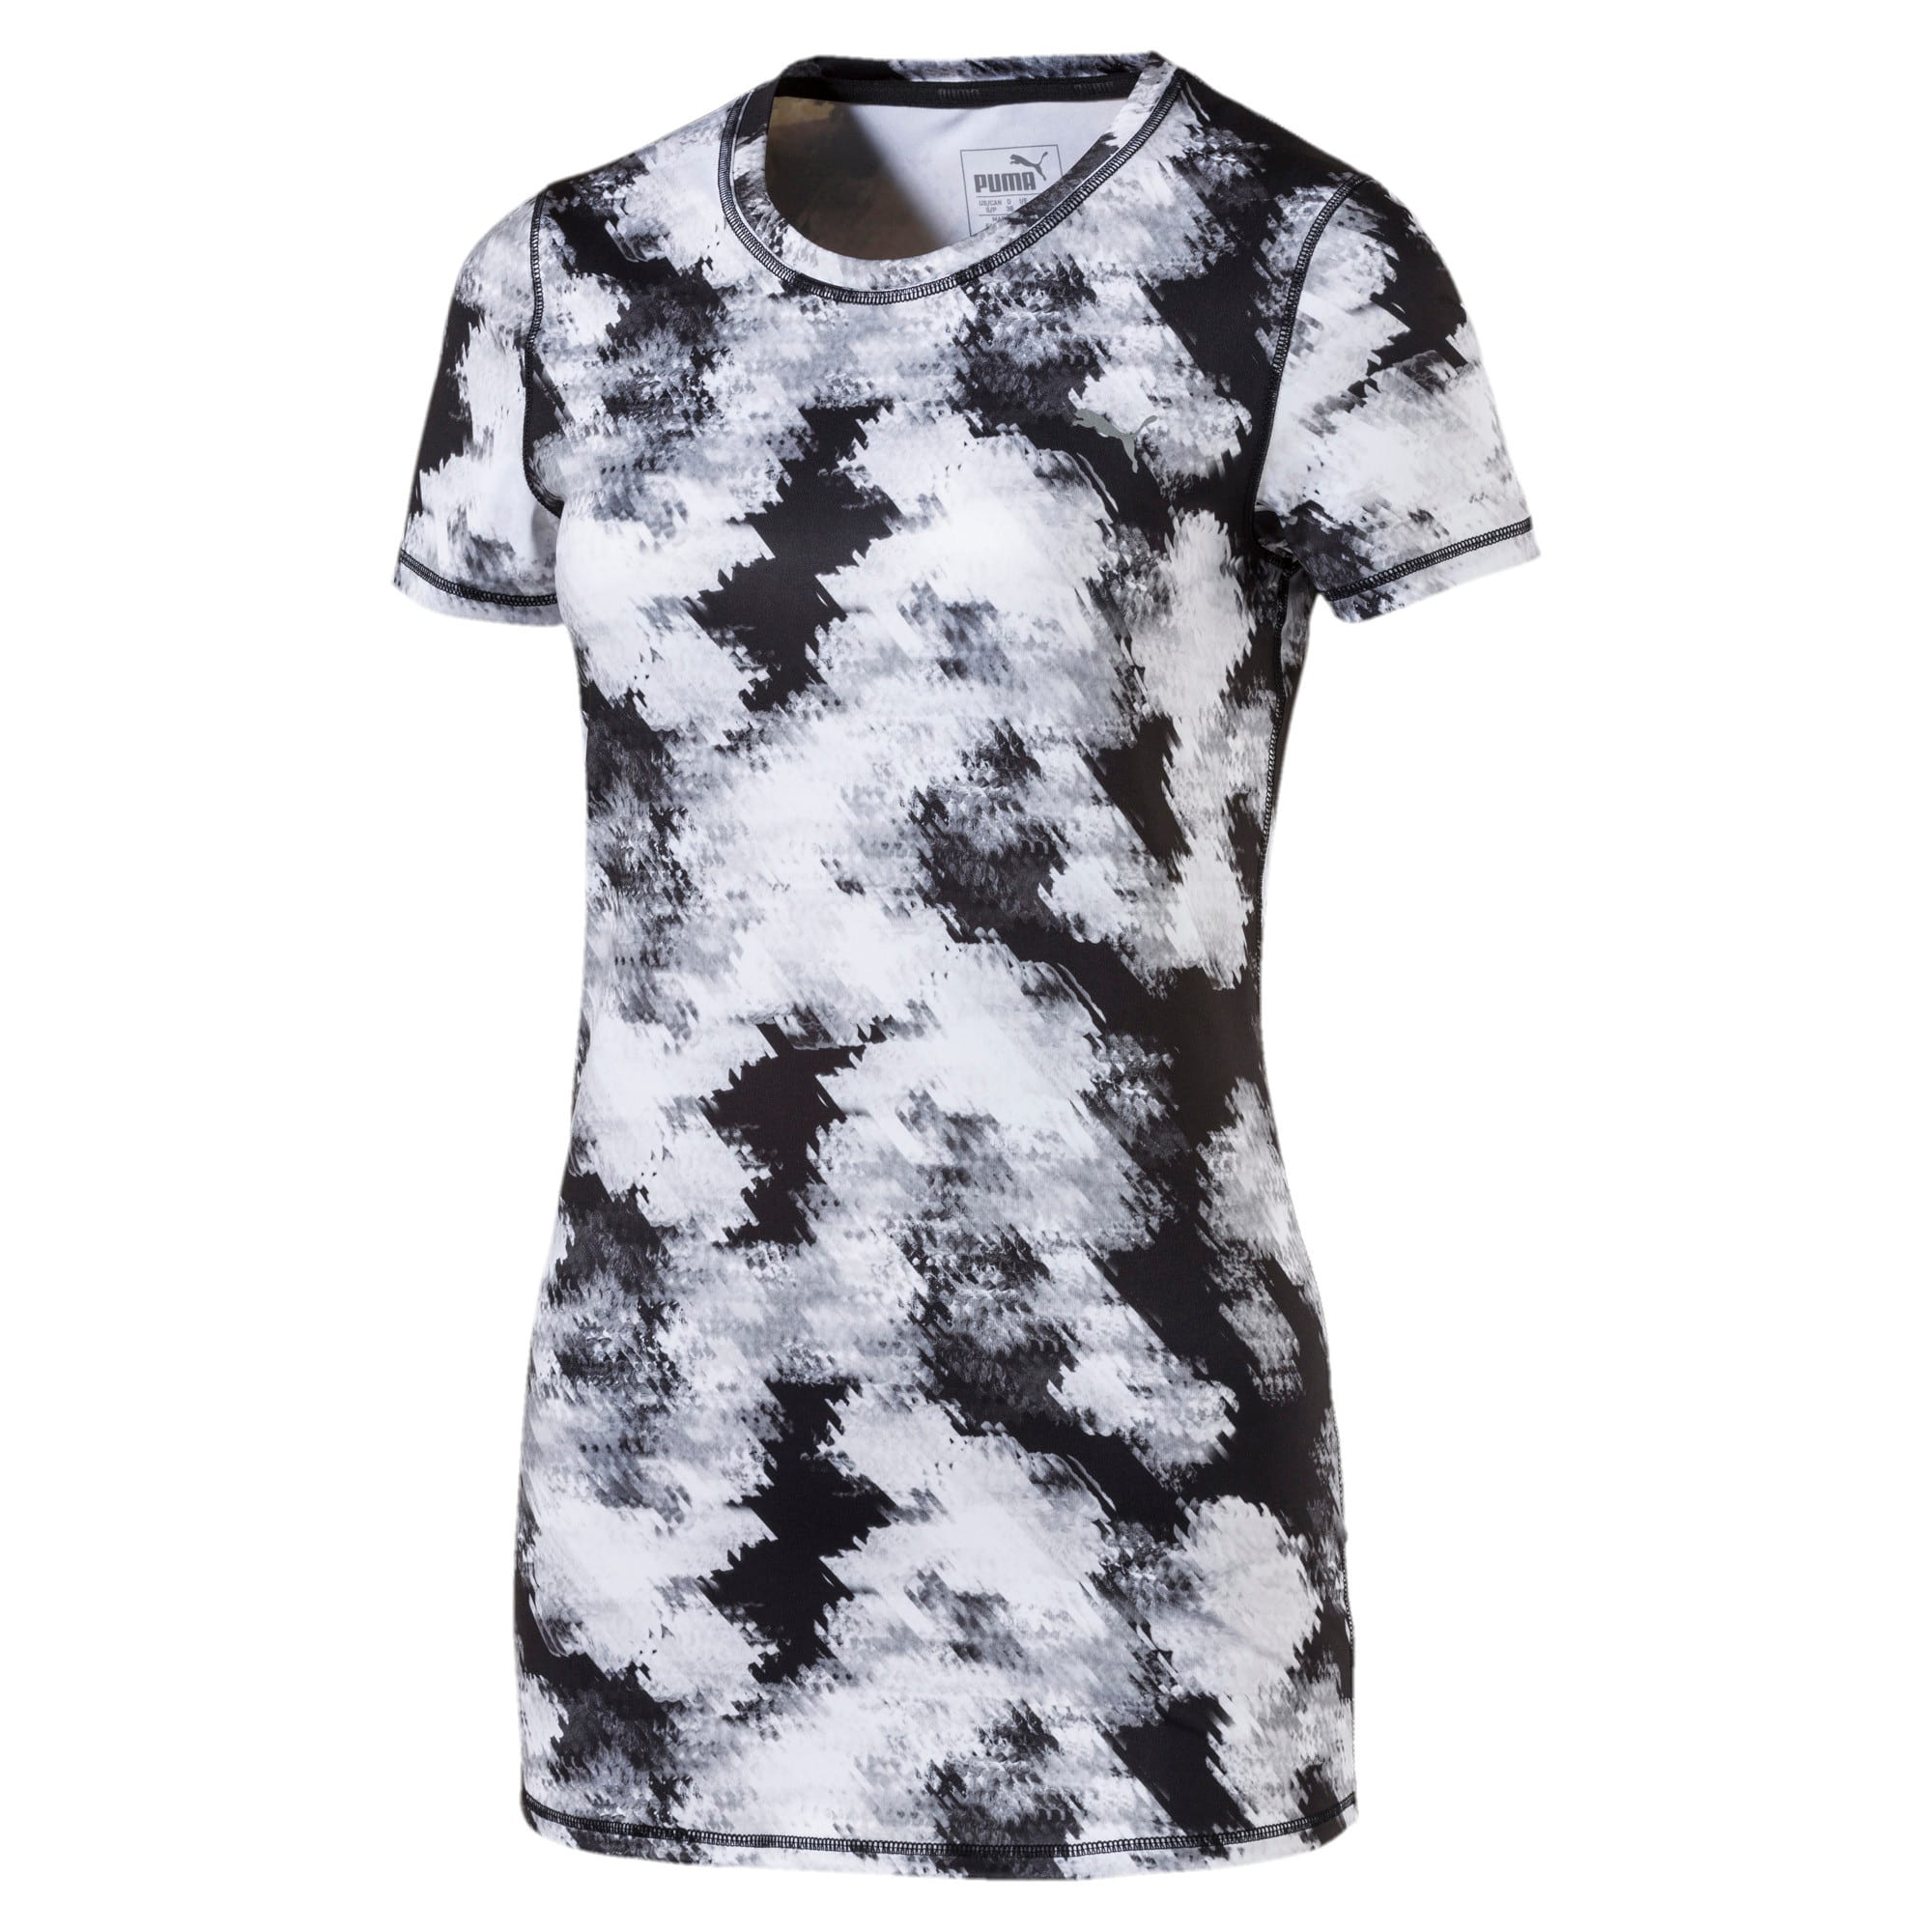 Thumbnail 4 of Training Women's Essential Graphic T-Shirt, black-white explosive print, medium-IND